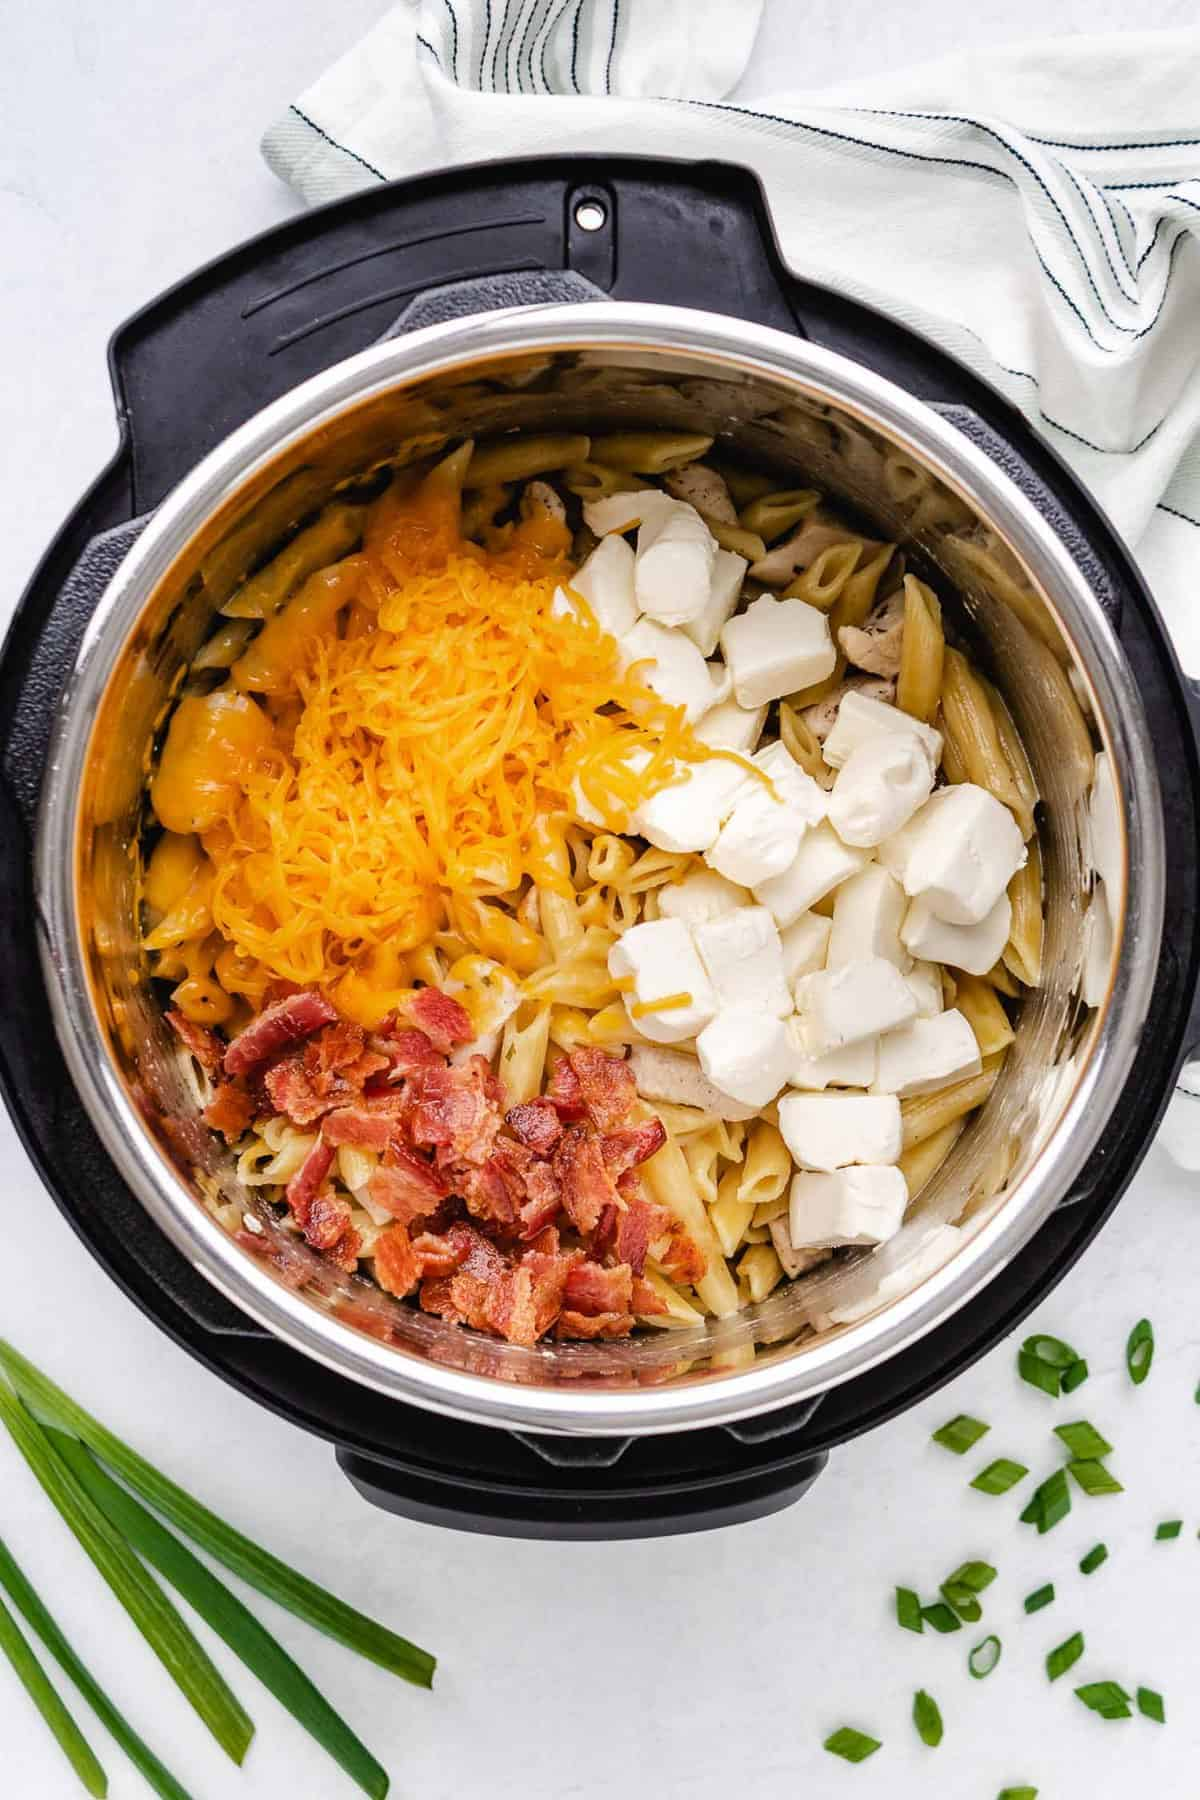 Cheddar cheese, cubed cream cheese, and cooked bacon on top of cooked pasta in an instant pot.